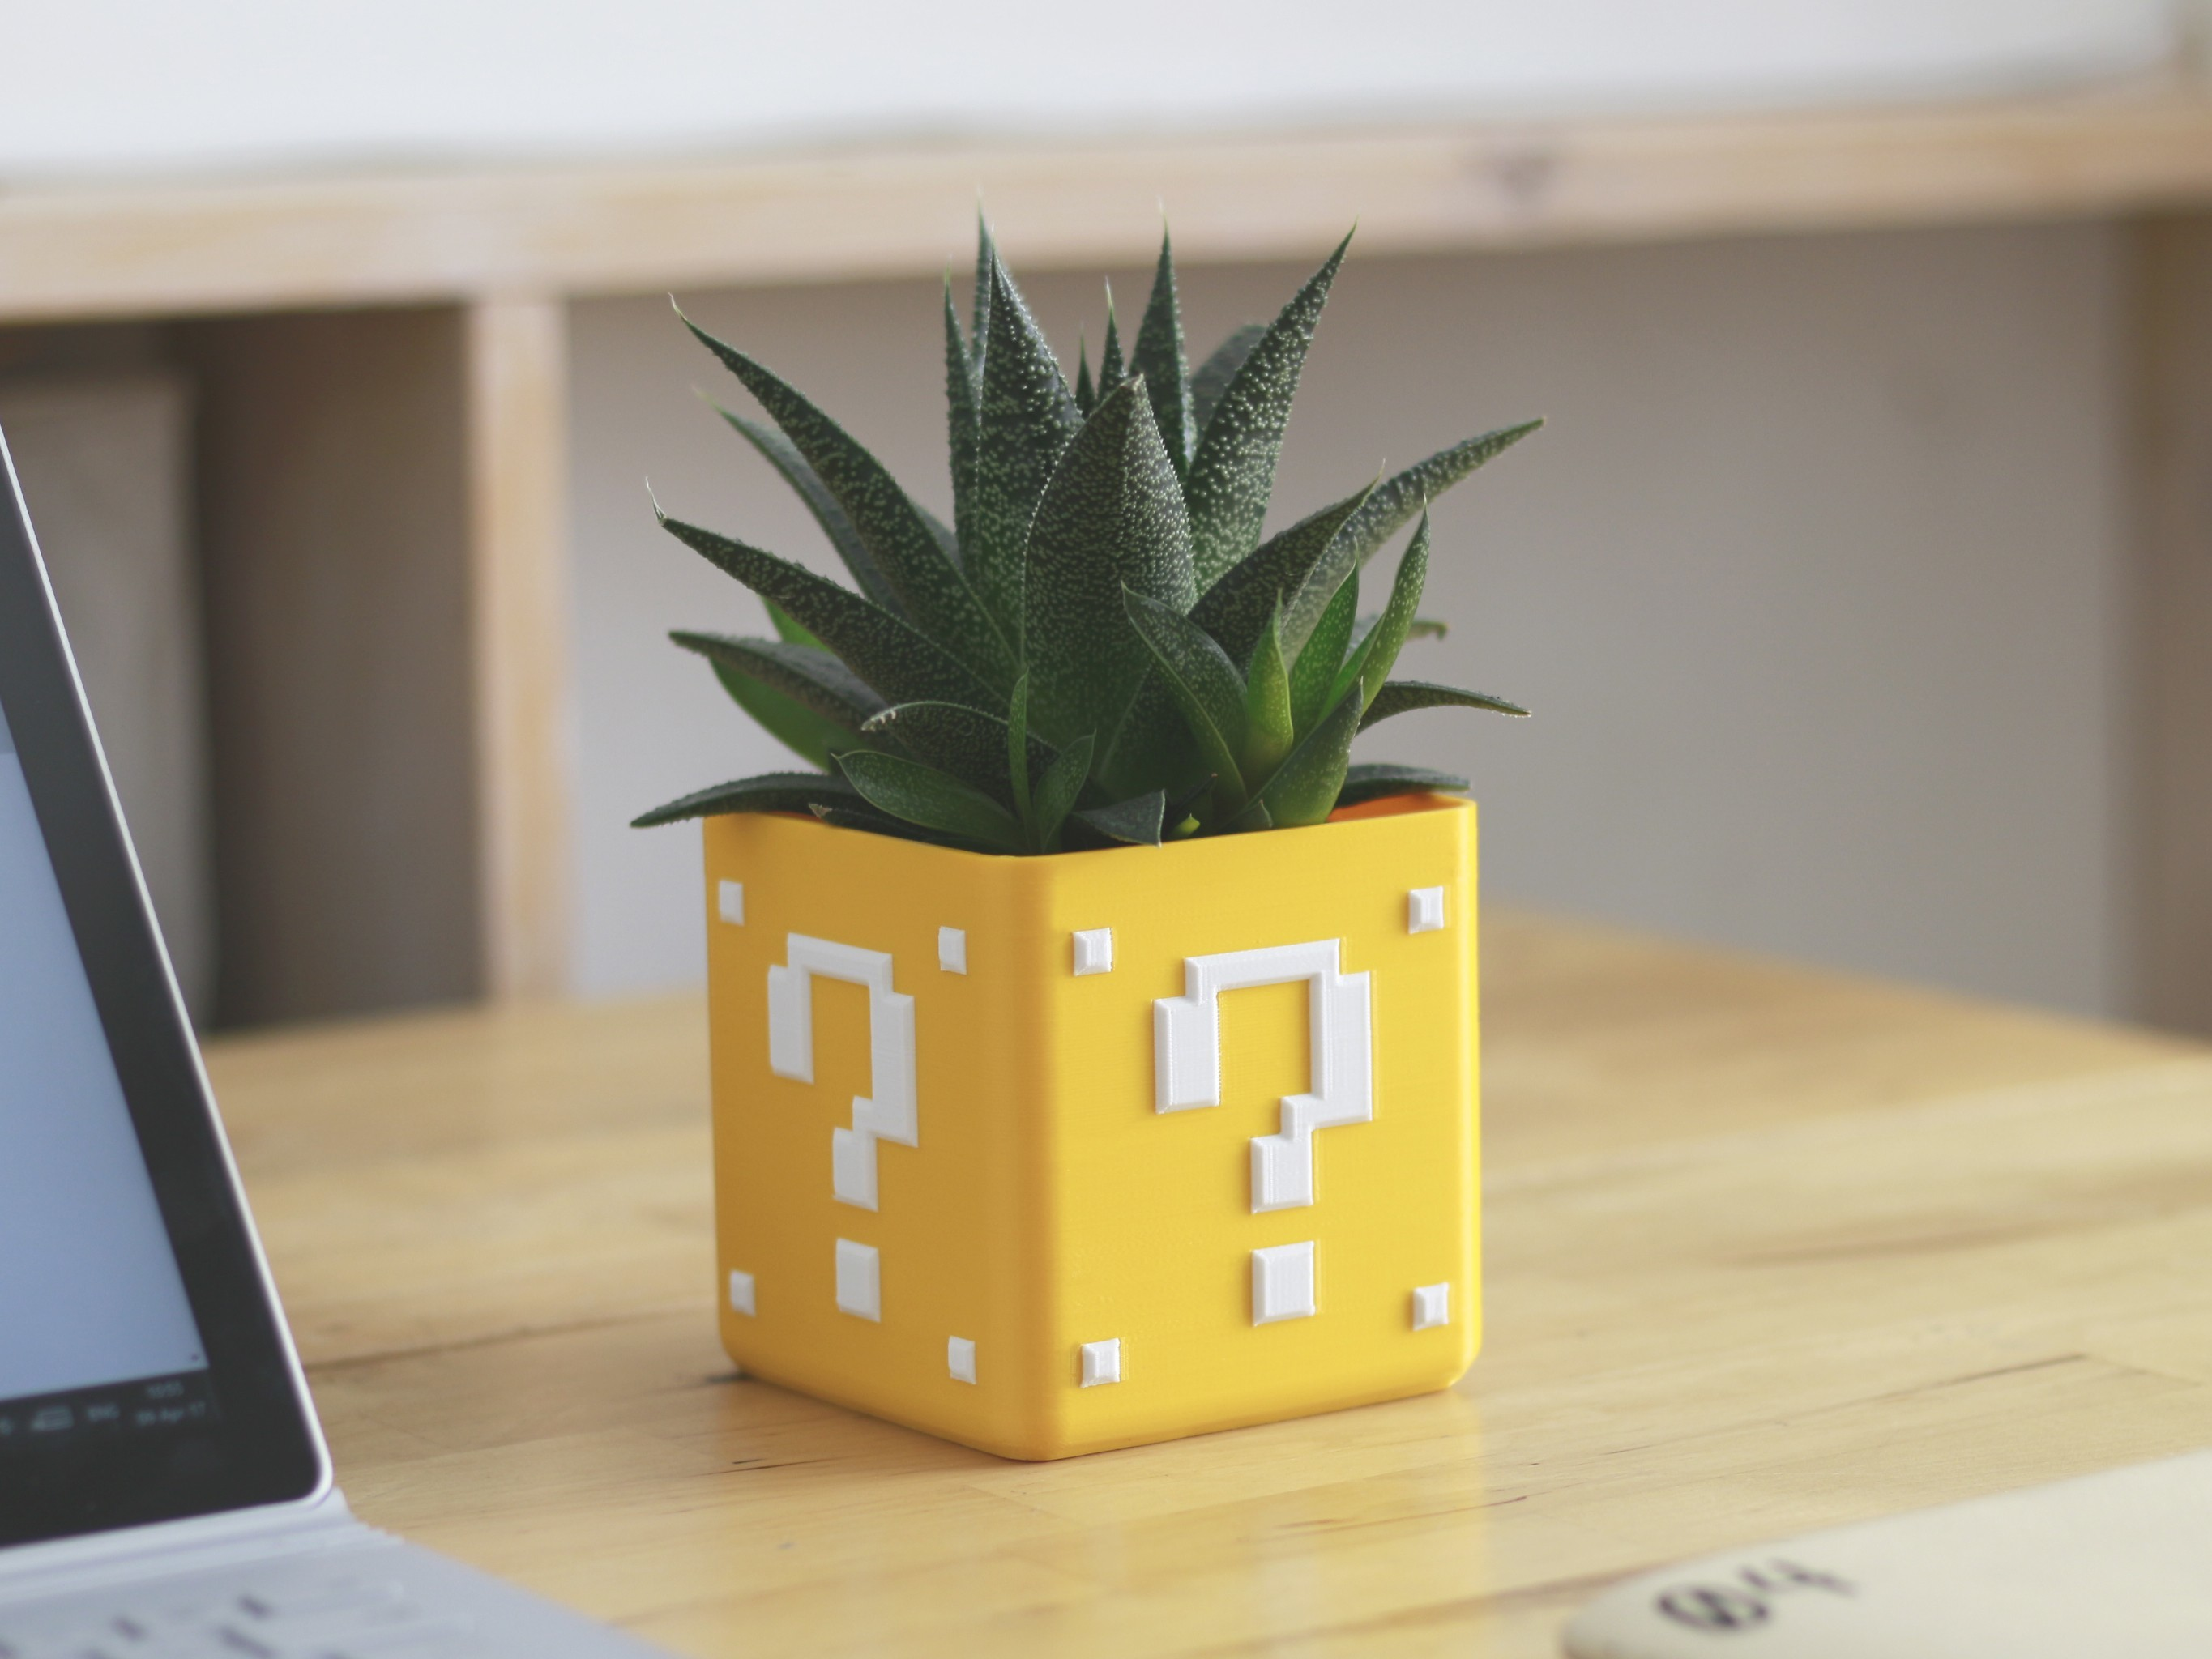 supermario_planter_1_thingiverse.jpg Download free STL file Video Game Planter Collection • Object to 3D print, flowalistik